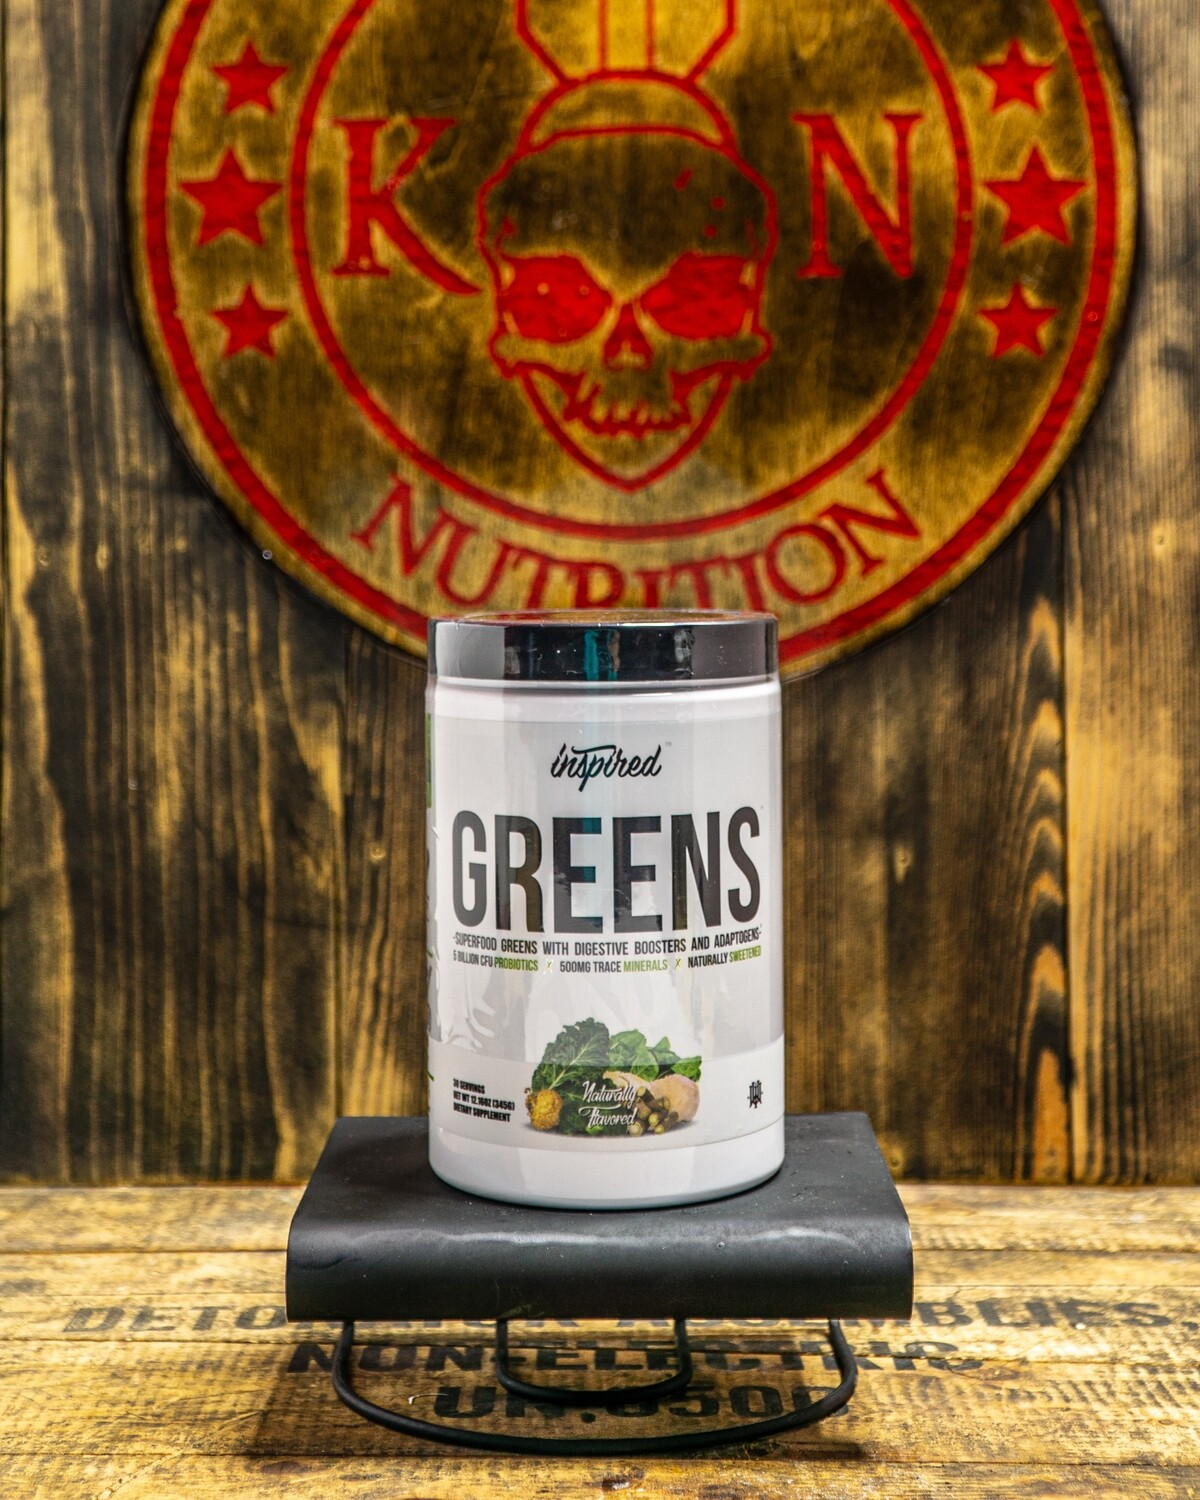 Inspired, Greens, 12.16 Oz